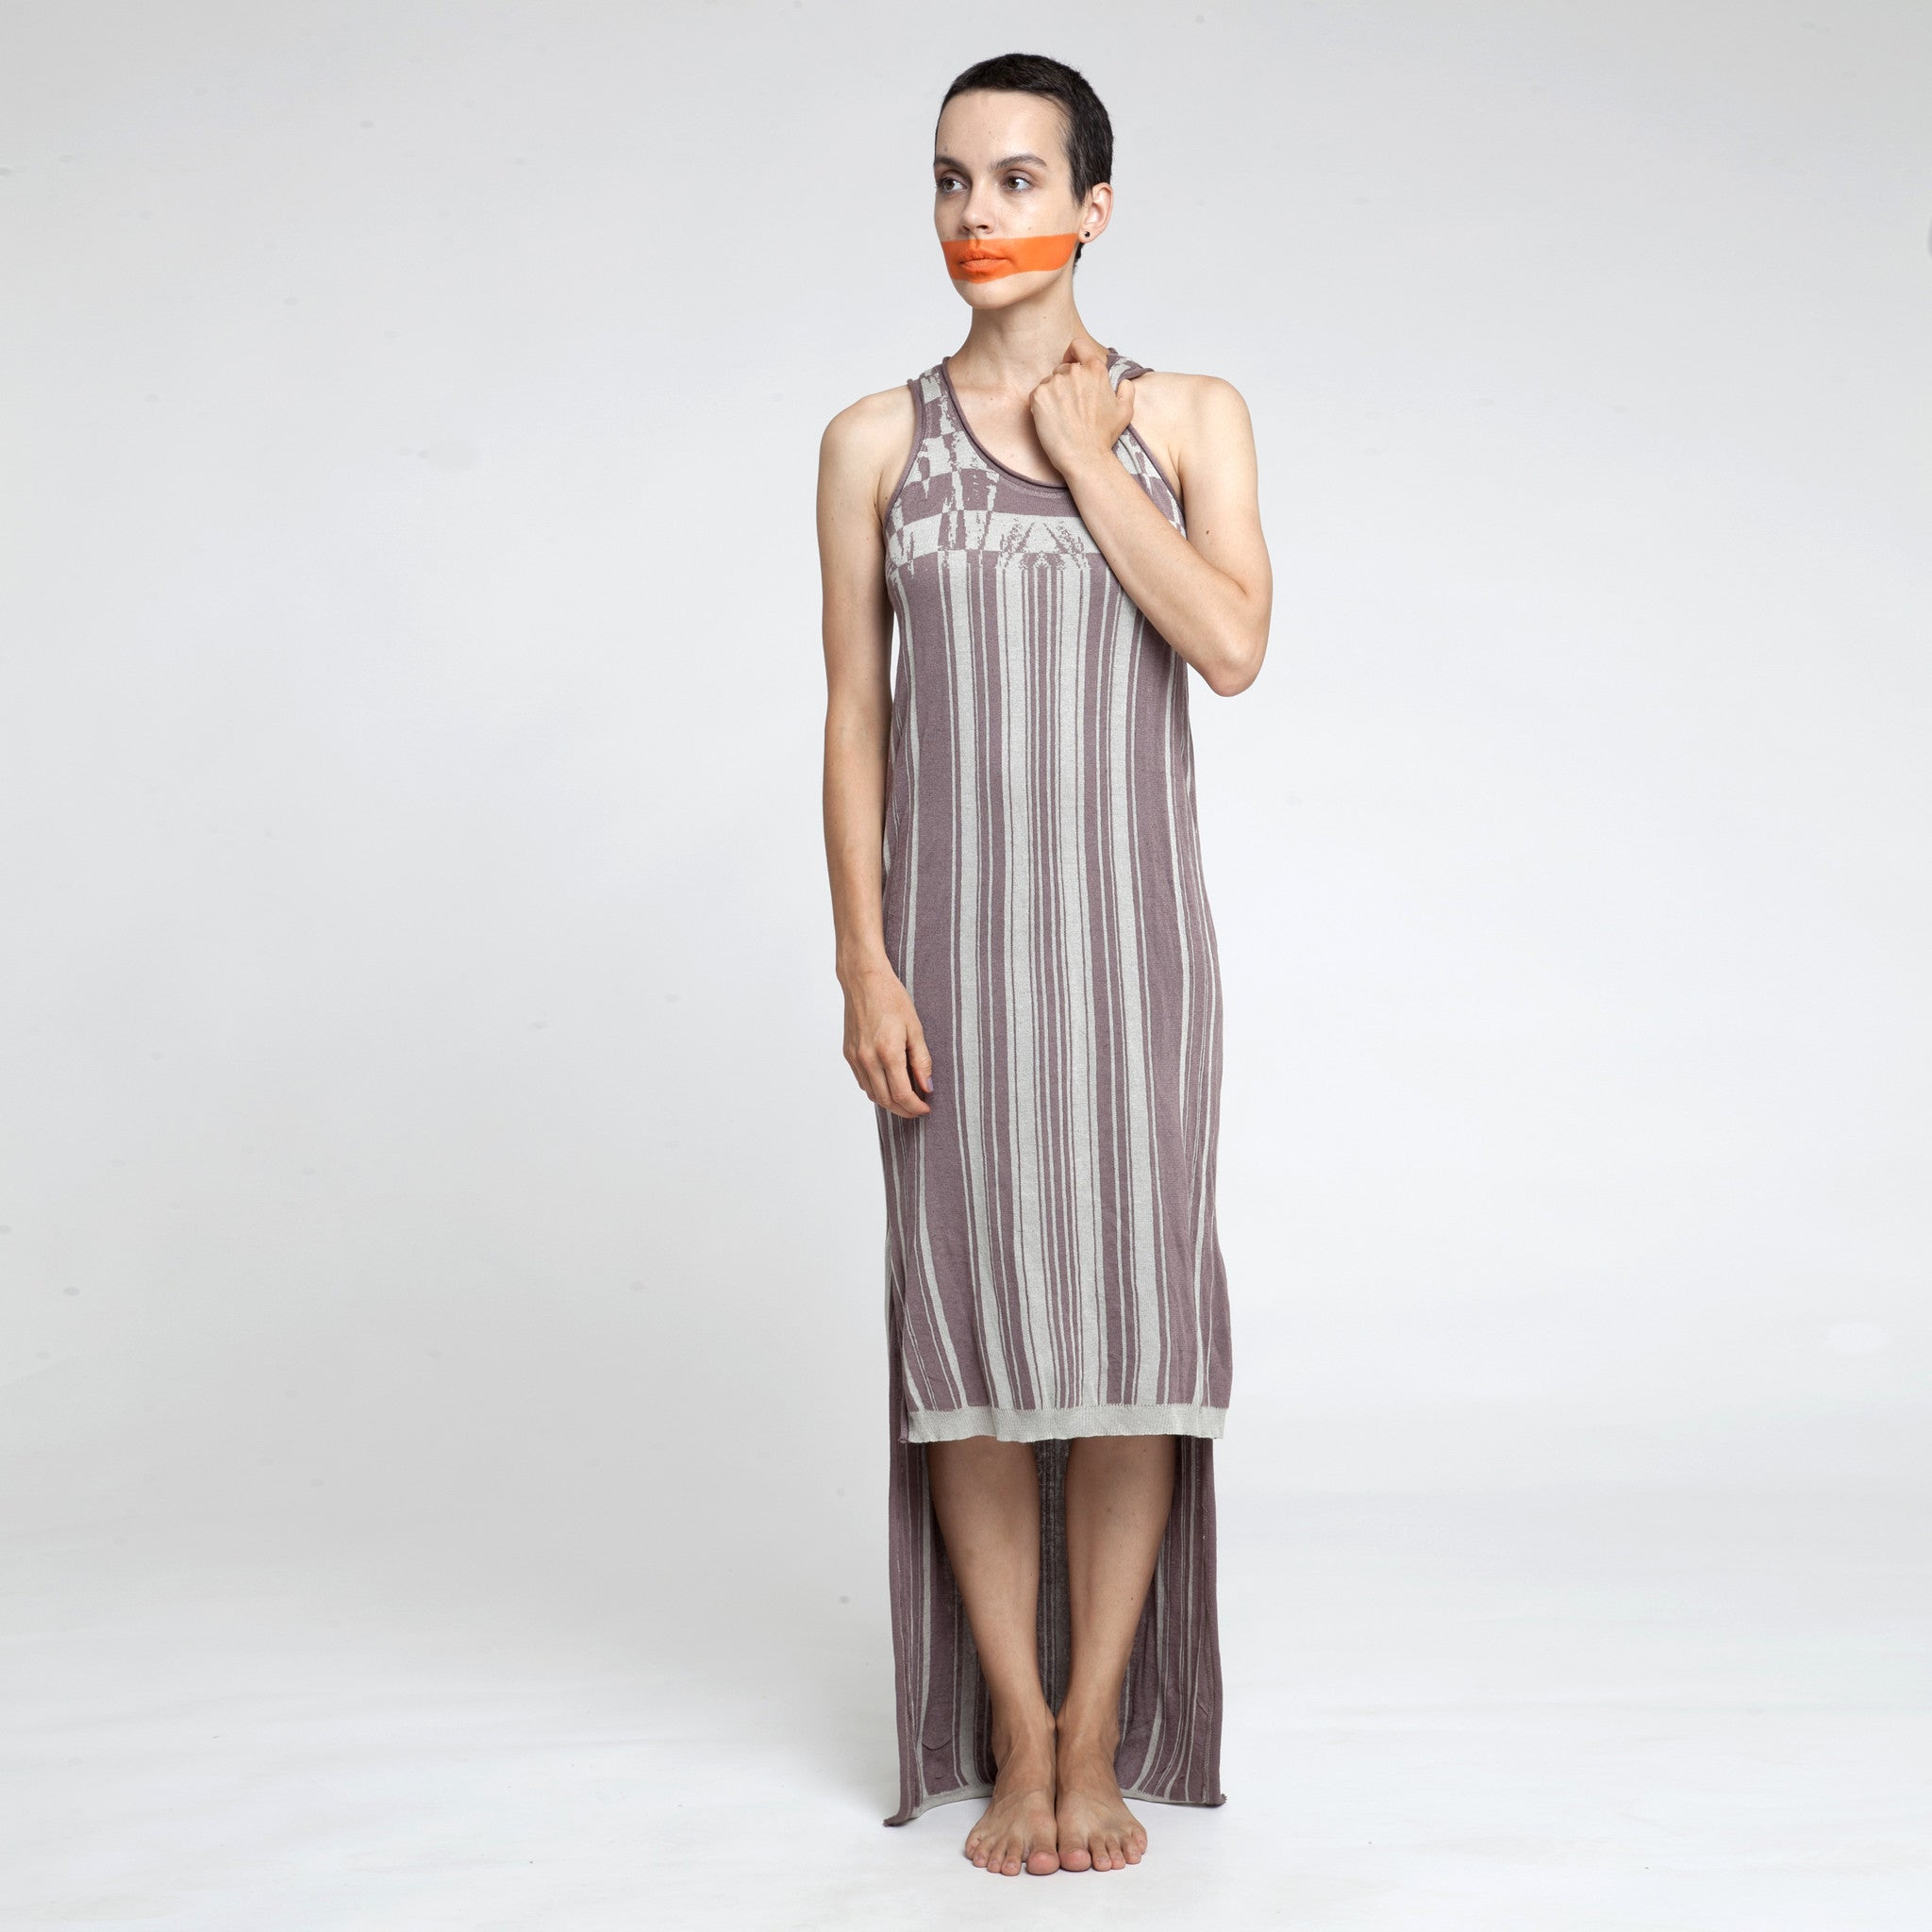 Sample Sale - Knitted jacquard Maxi dress in stone and black size S-M - DuendeFashion  - 3